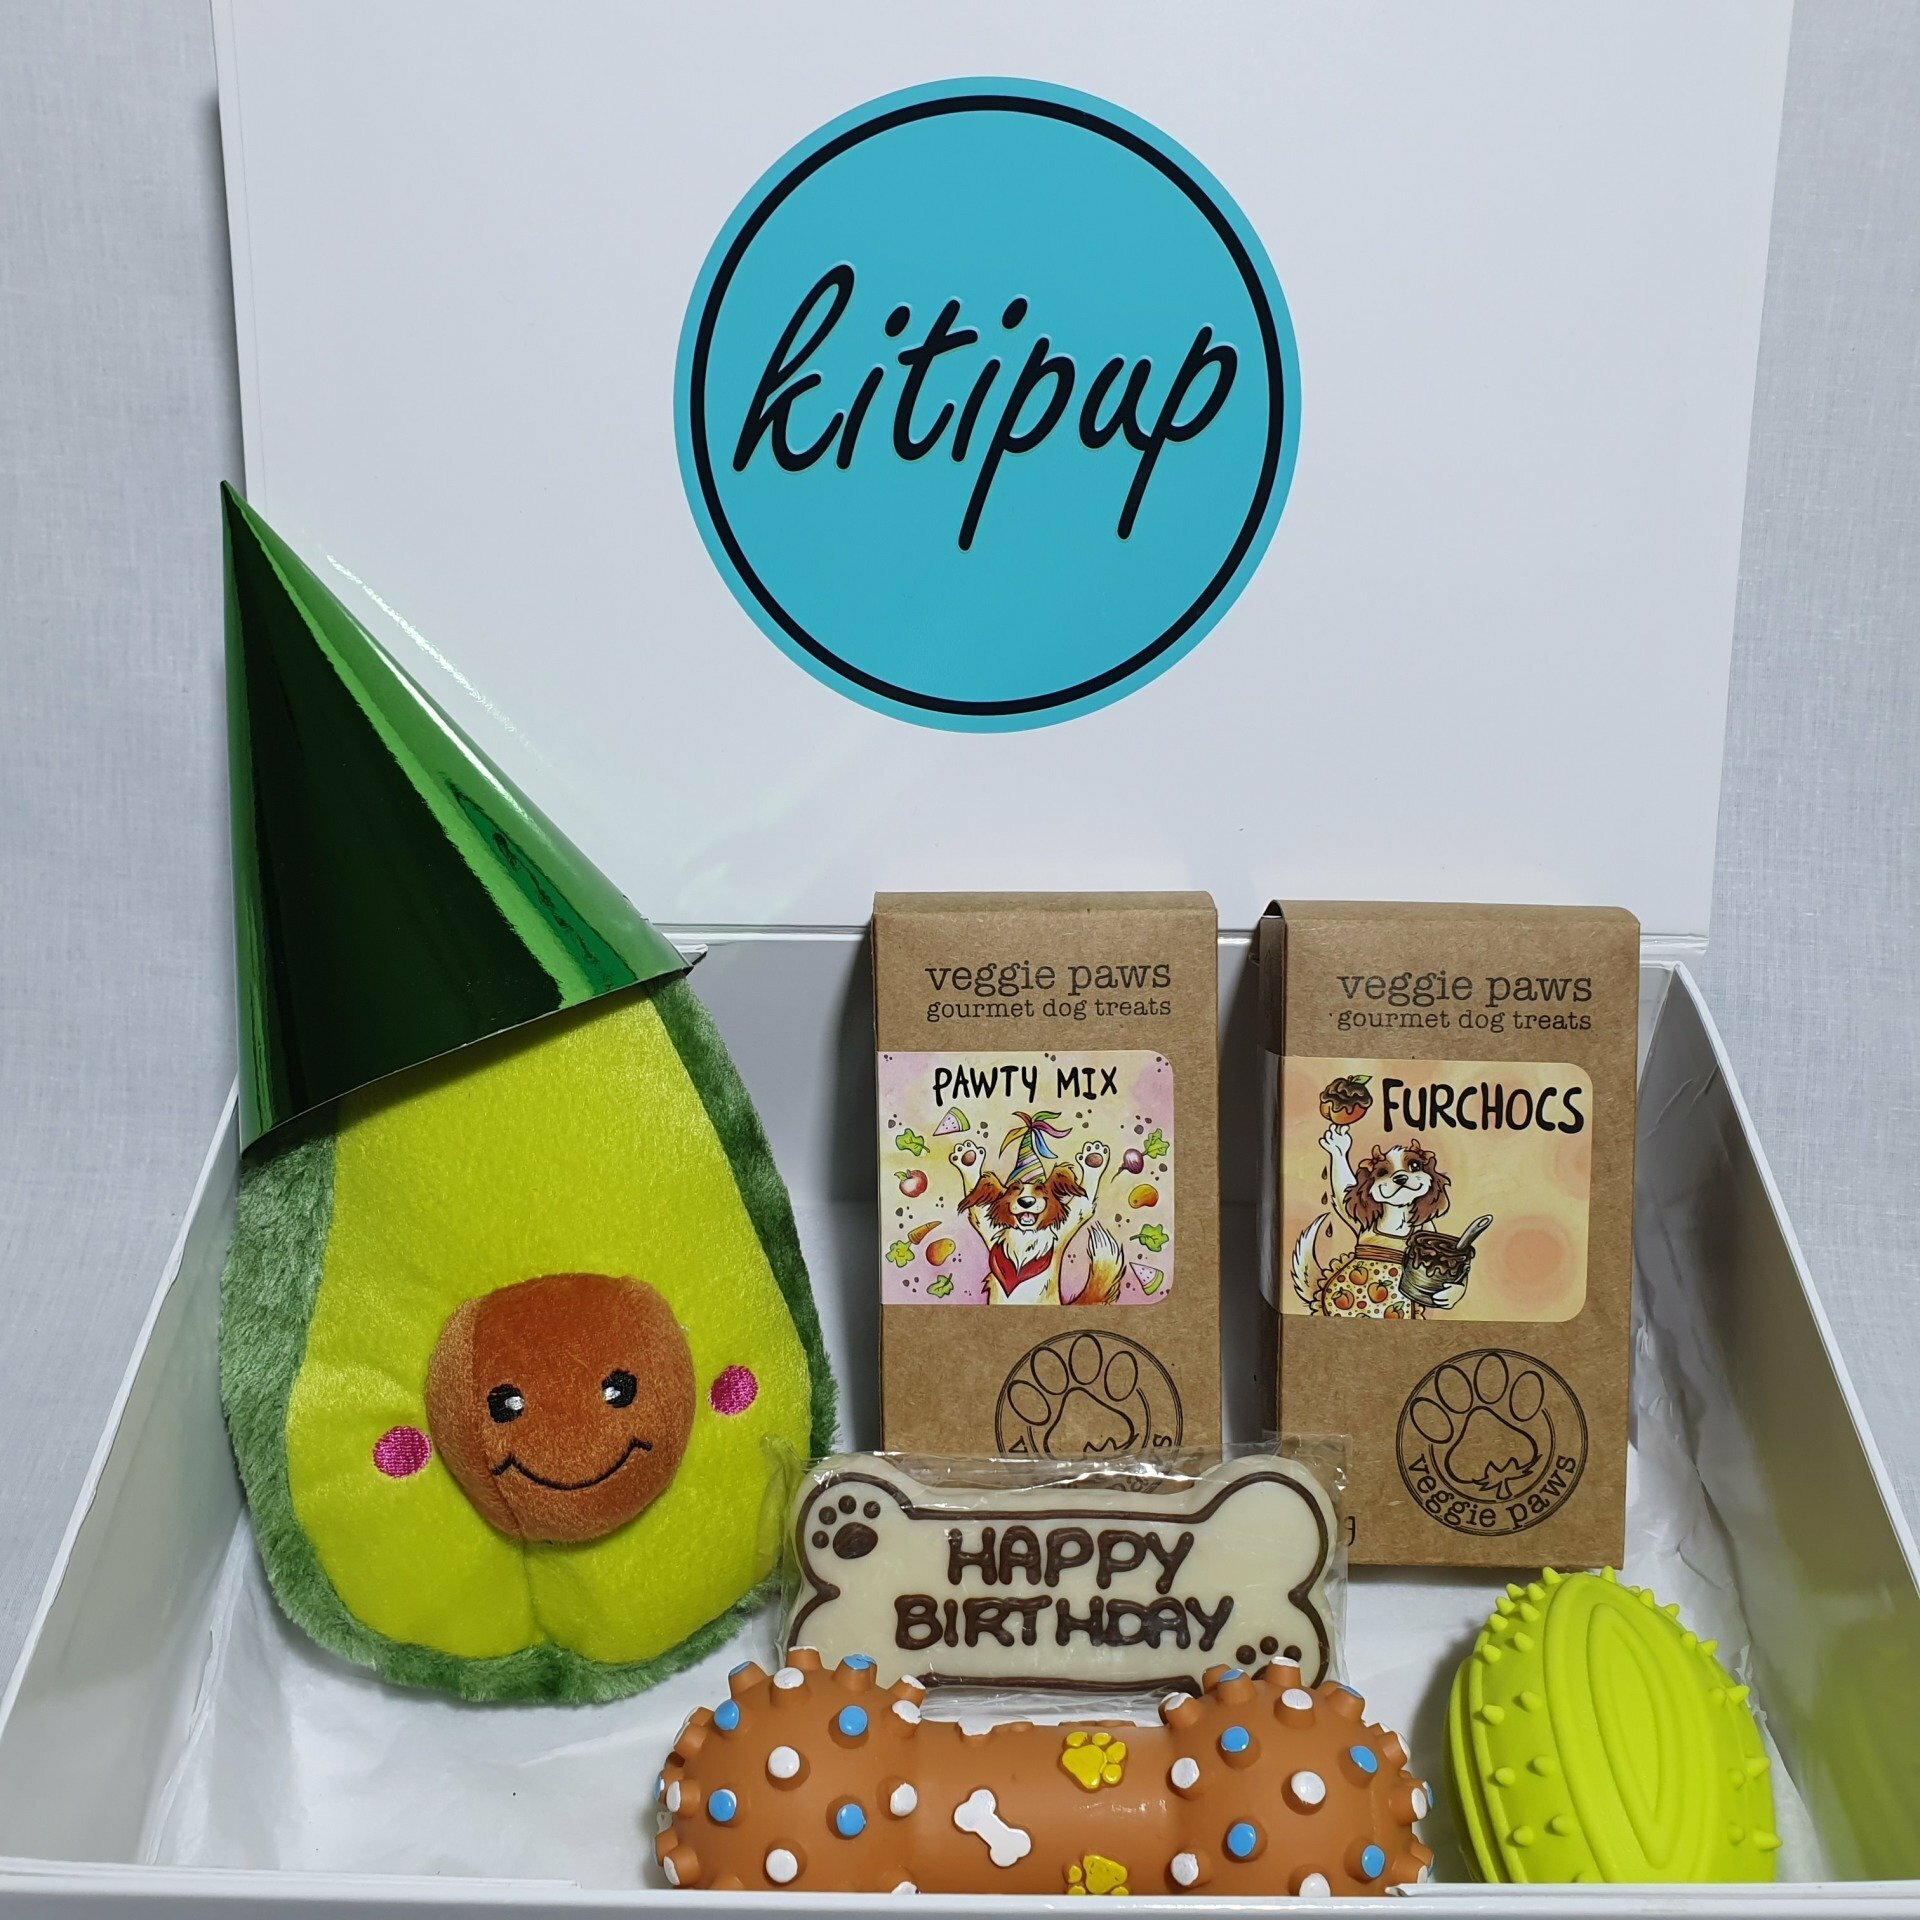 Happy Woof Day Gift Box featuring Alvin the Avocado